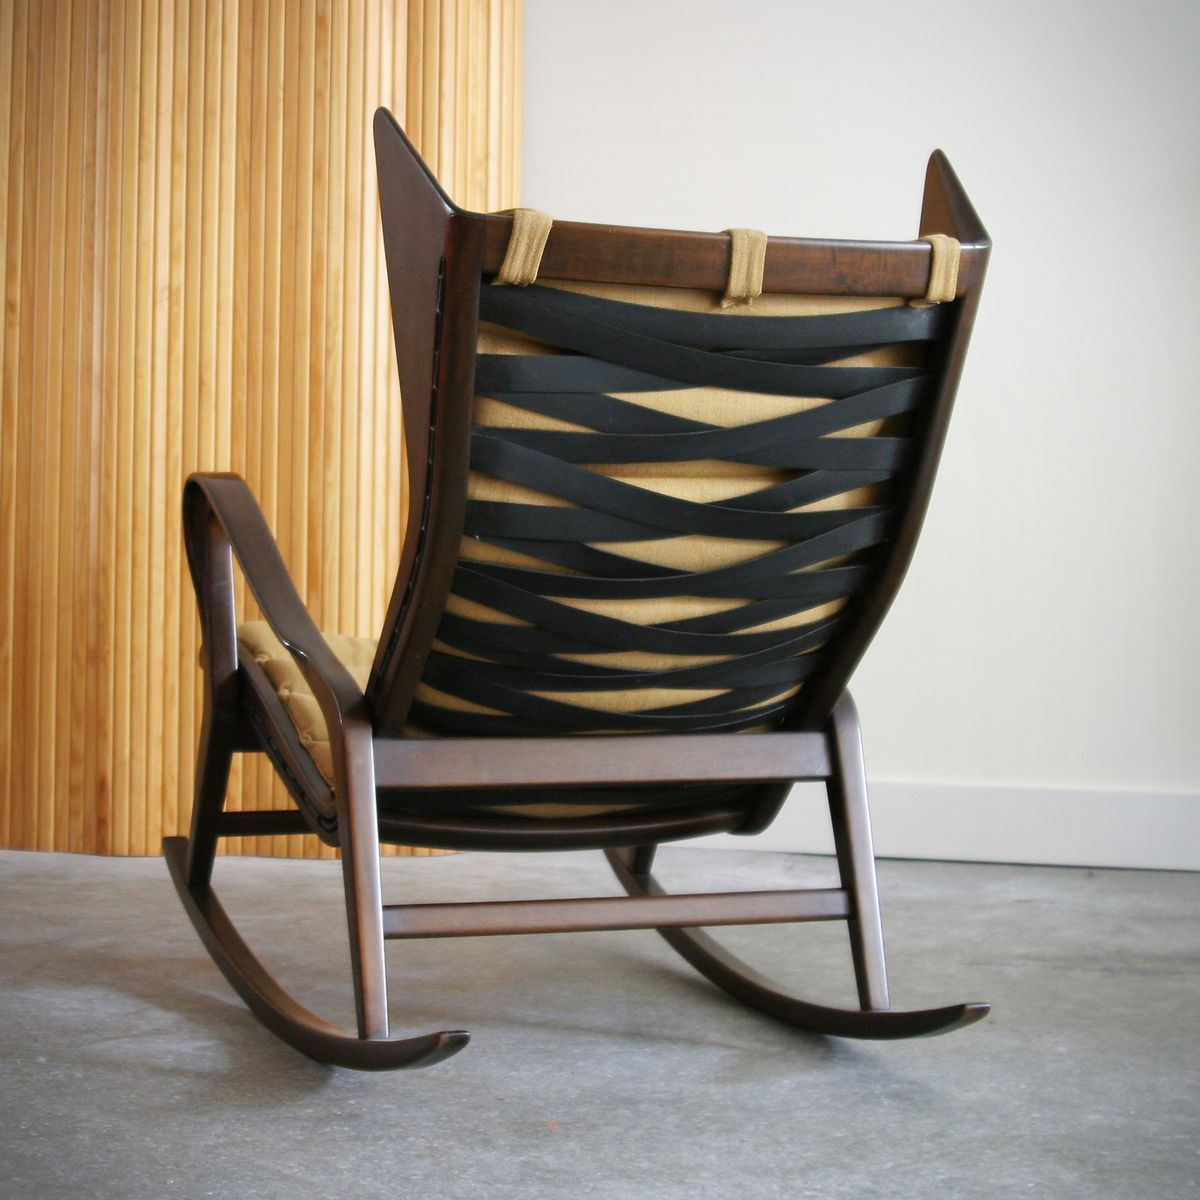 Vintage rocking chair by gio ponti for cassina for sale at for Schaukelstuhl sale